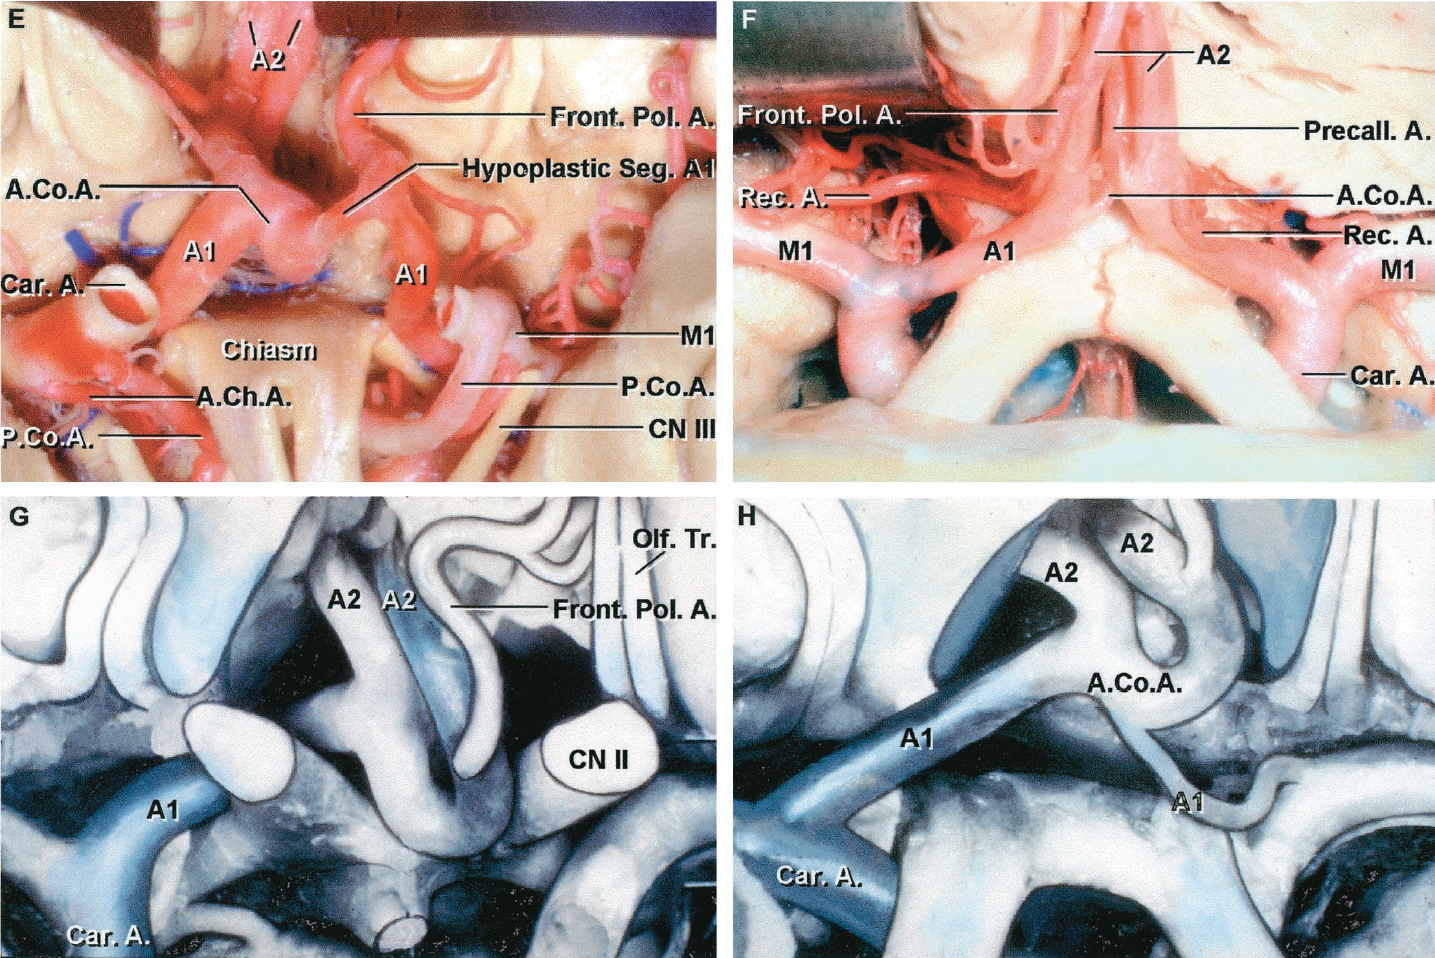 FIGURE 2.23 E-H.E, the left A1 gives rise to a frontopolar branch. The segment of the A1 between the origin of the frontopolar branch and the AComA is hypoplastic. The right A1 is dominant and provides the majority of the flow to both A2s. F, anterior view. The left A1 is larger than the right. The AComA is short and small. A precallosal artery arises from the left A1-A2 junction near the AComA. The right recurrent artery arises from the frontopolar artery and passes laterally above the carotid bifurcation. The left recurrent artery arises at the level of the AComA. G and H, most common anatomic variant associated with an AComA aneurysm. G, the right A1 is dominant and gives rise to both A2s. The left A1 is hidden behind the optic nerve. The left A2 loops downward between the optic nerves. H, the anterior communicating complex has been elevated to show the hypoplastic left A1. A., artery; A.Ch.A., anterior choroidal artery; Bas., basilar; Car., carotid; CN, cranial nerve; Front. Pol., frontopolar; Lam., lamina; Olf., olfactory; P.Co.A., posterior communicating artery; Perf., perforating; Precall., precallosal; Rec., recurrent; Seg., segment; Term., terminalis; Tr., tract.